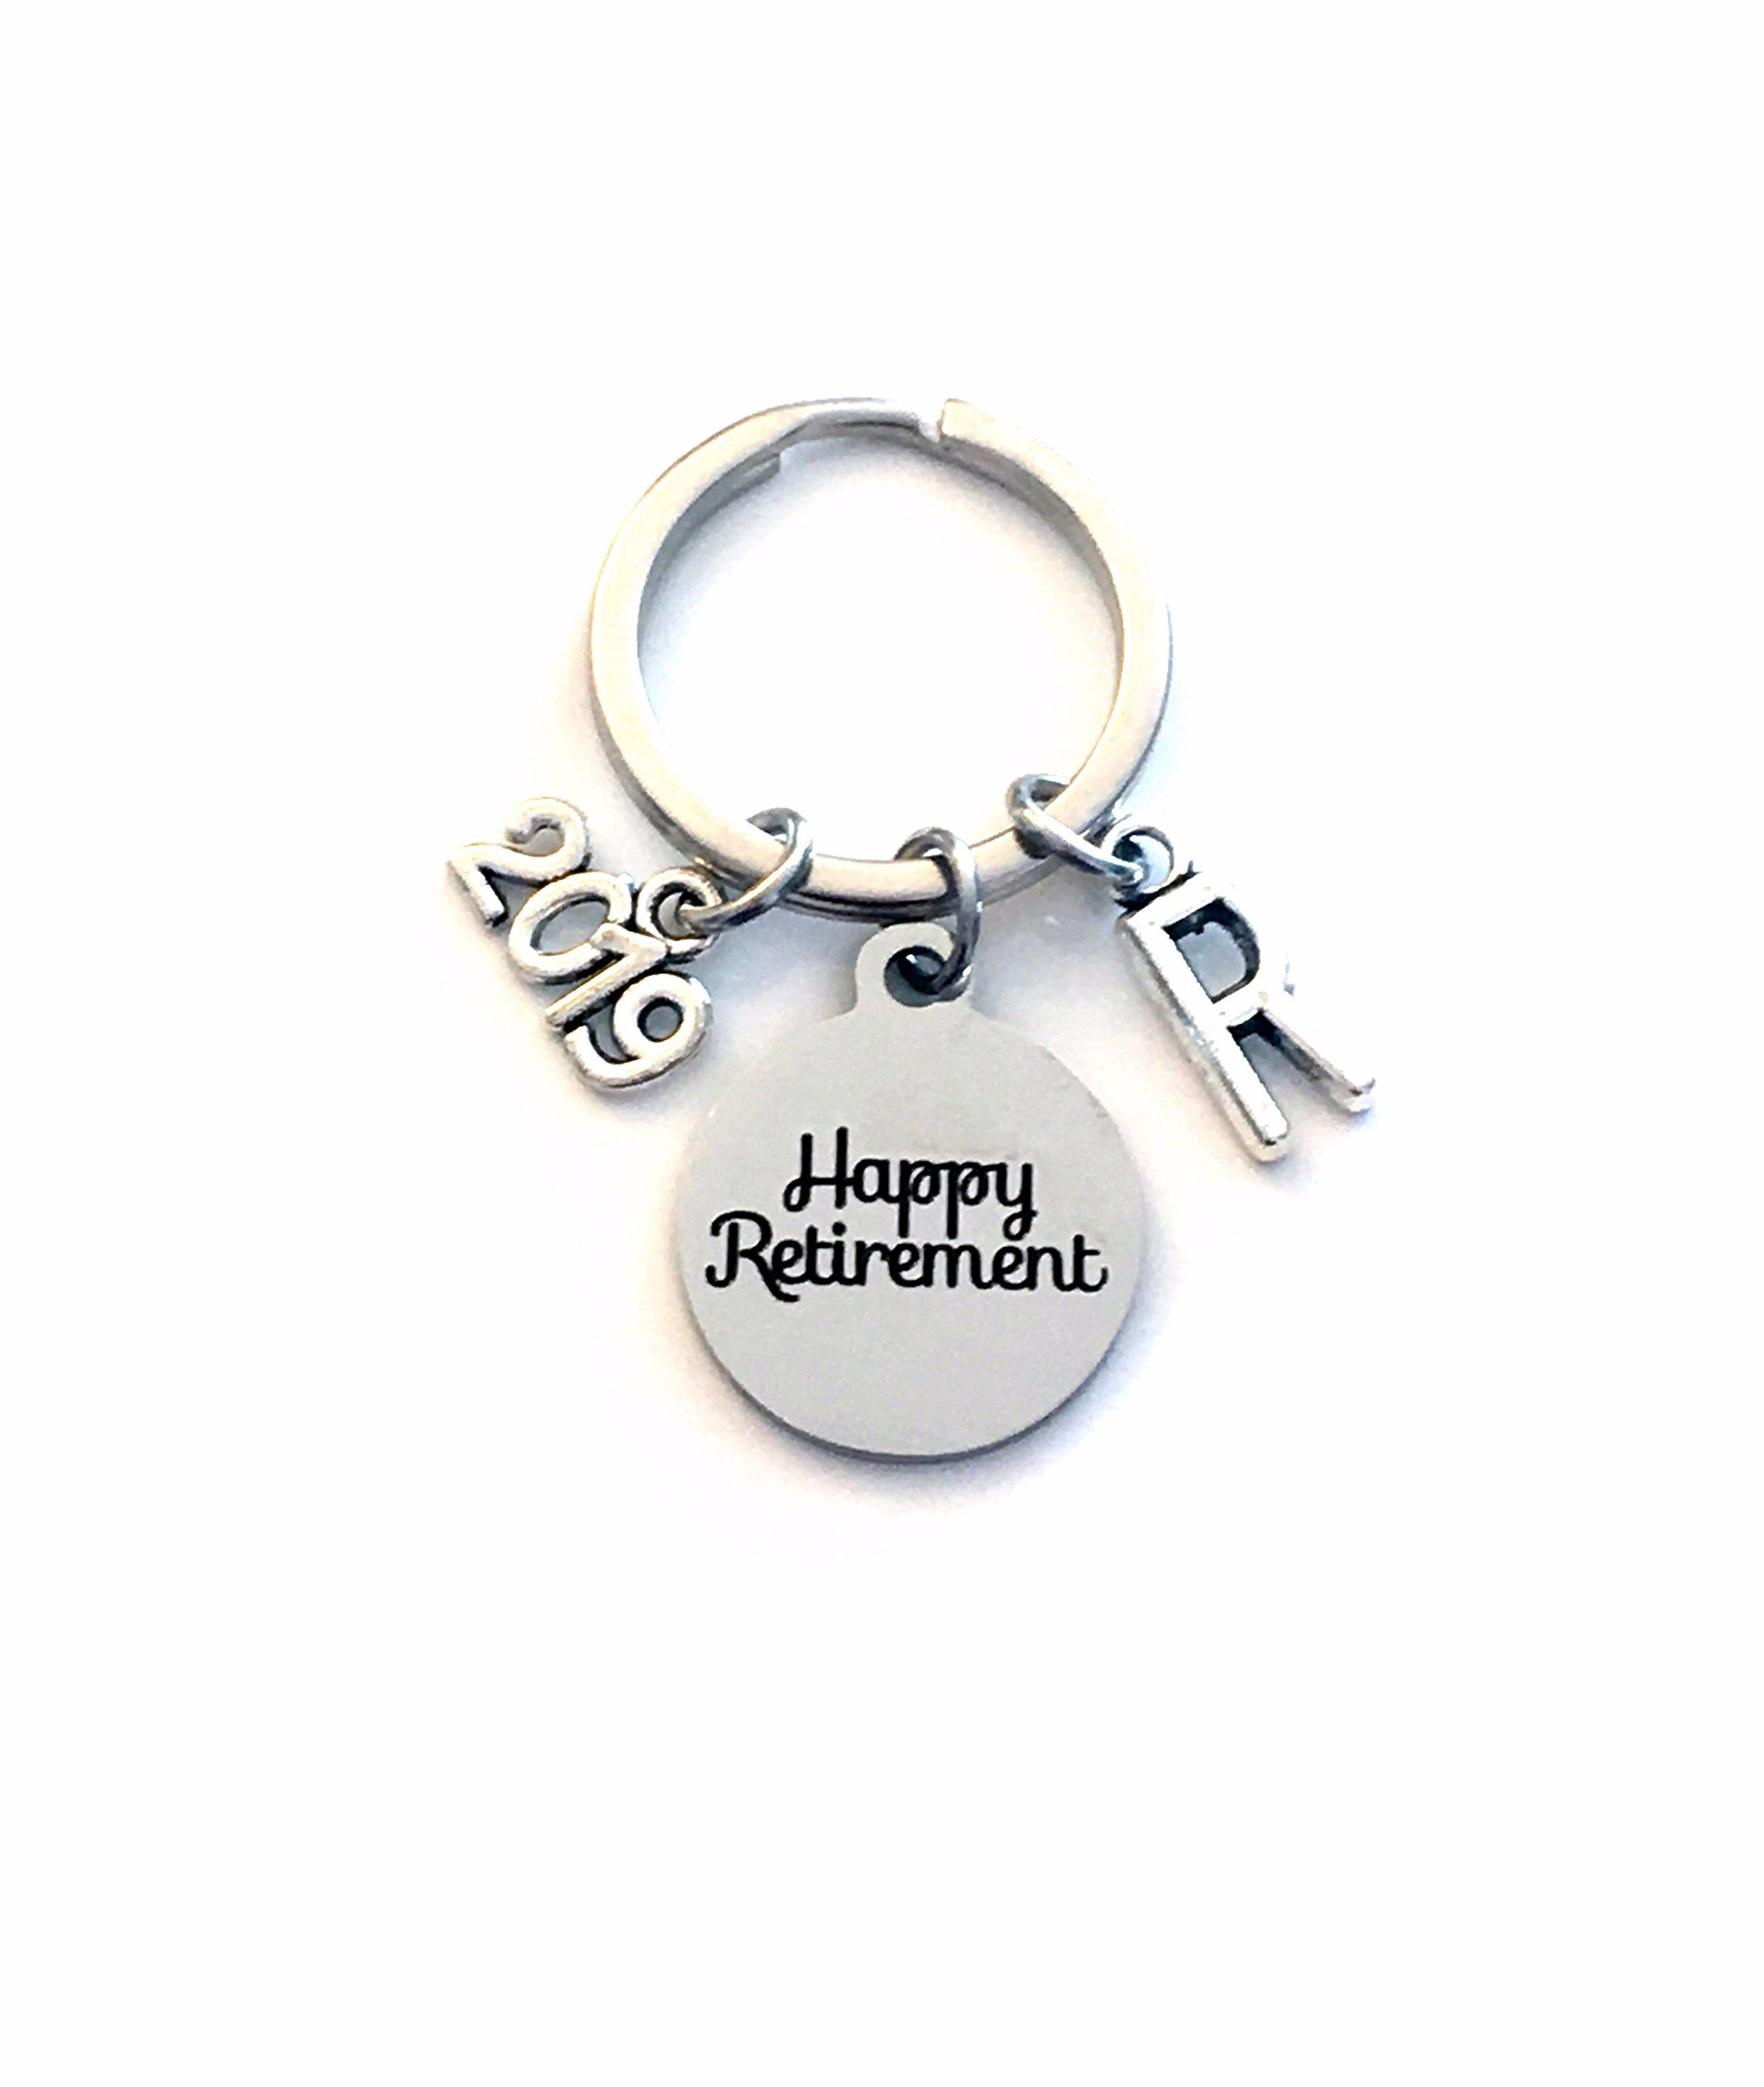 2019 Retirement Gift for Him or Her Keychain b330781407